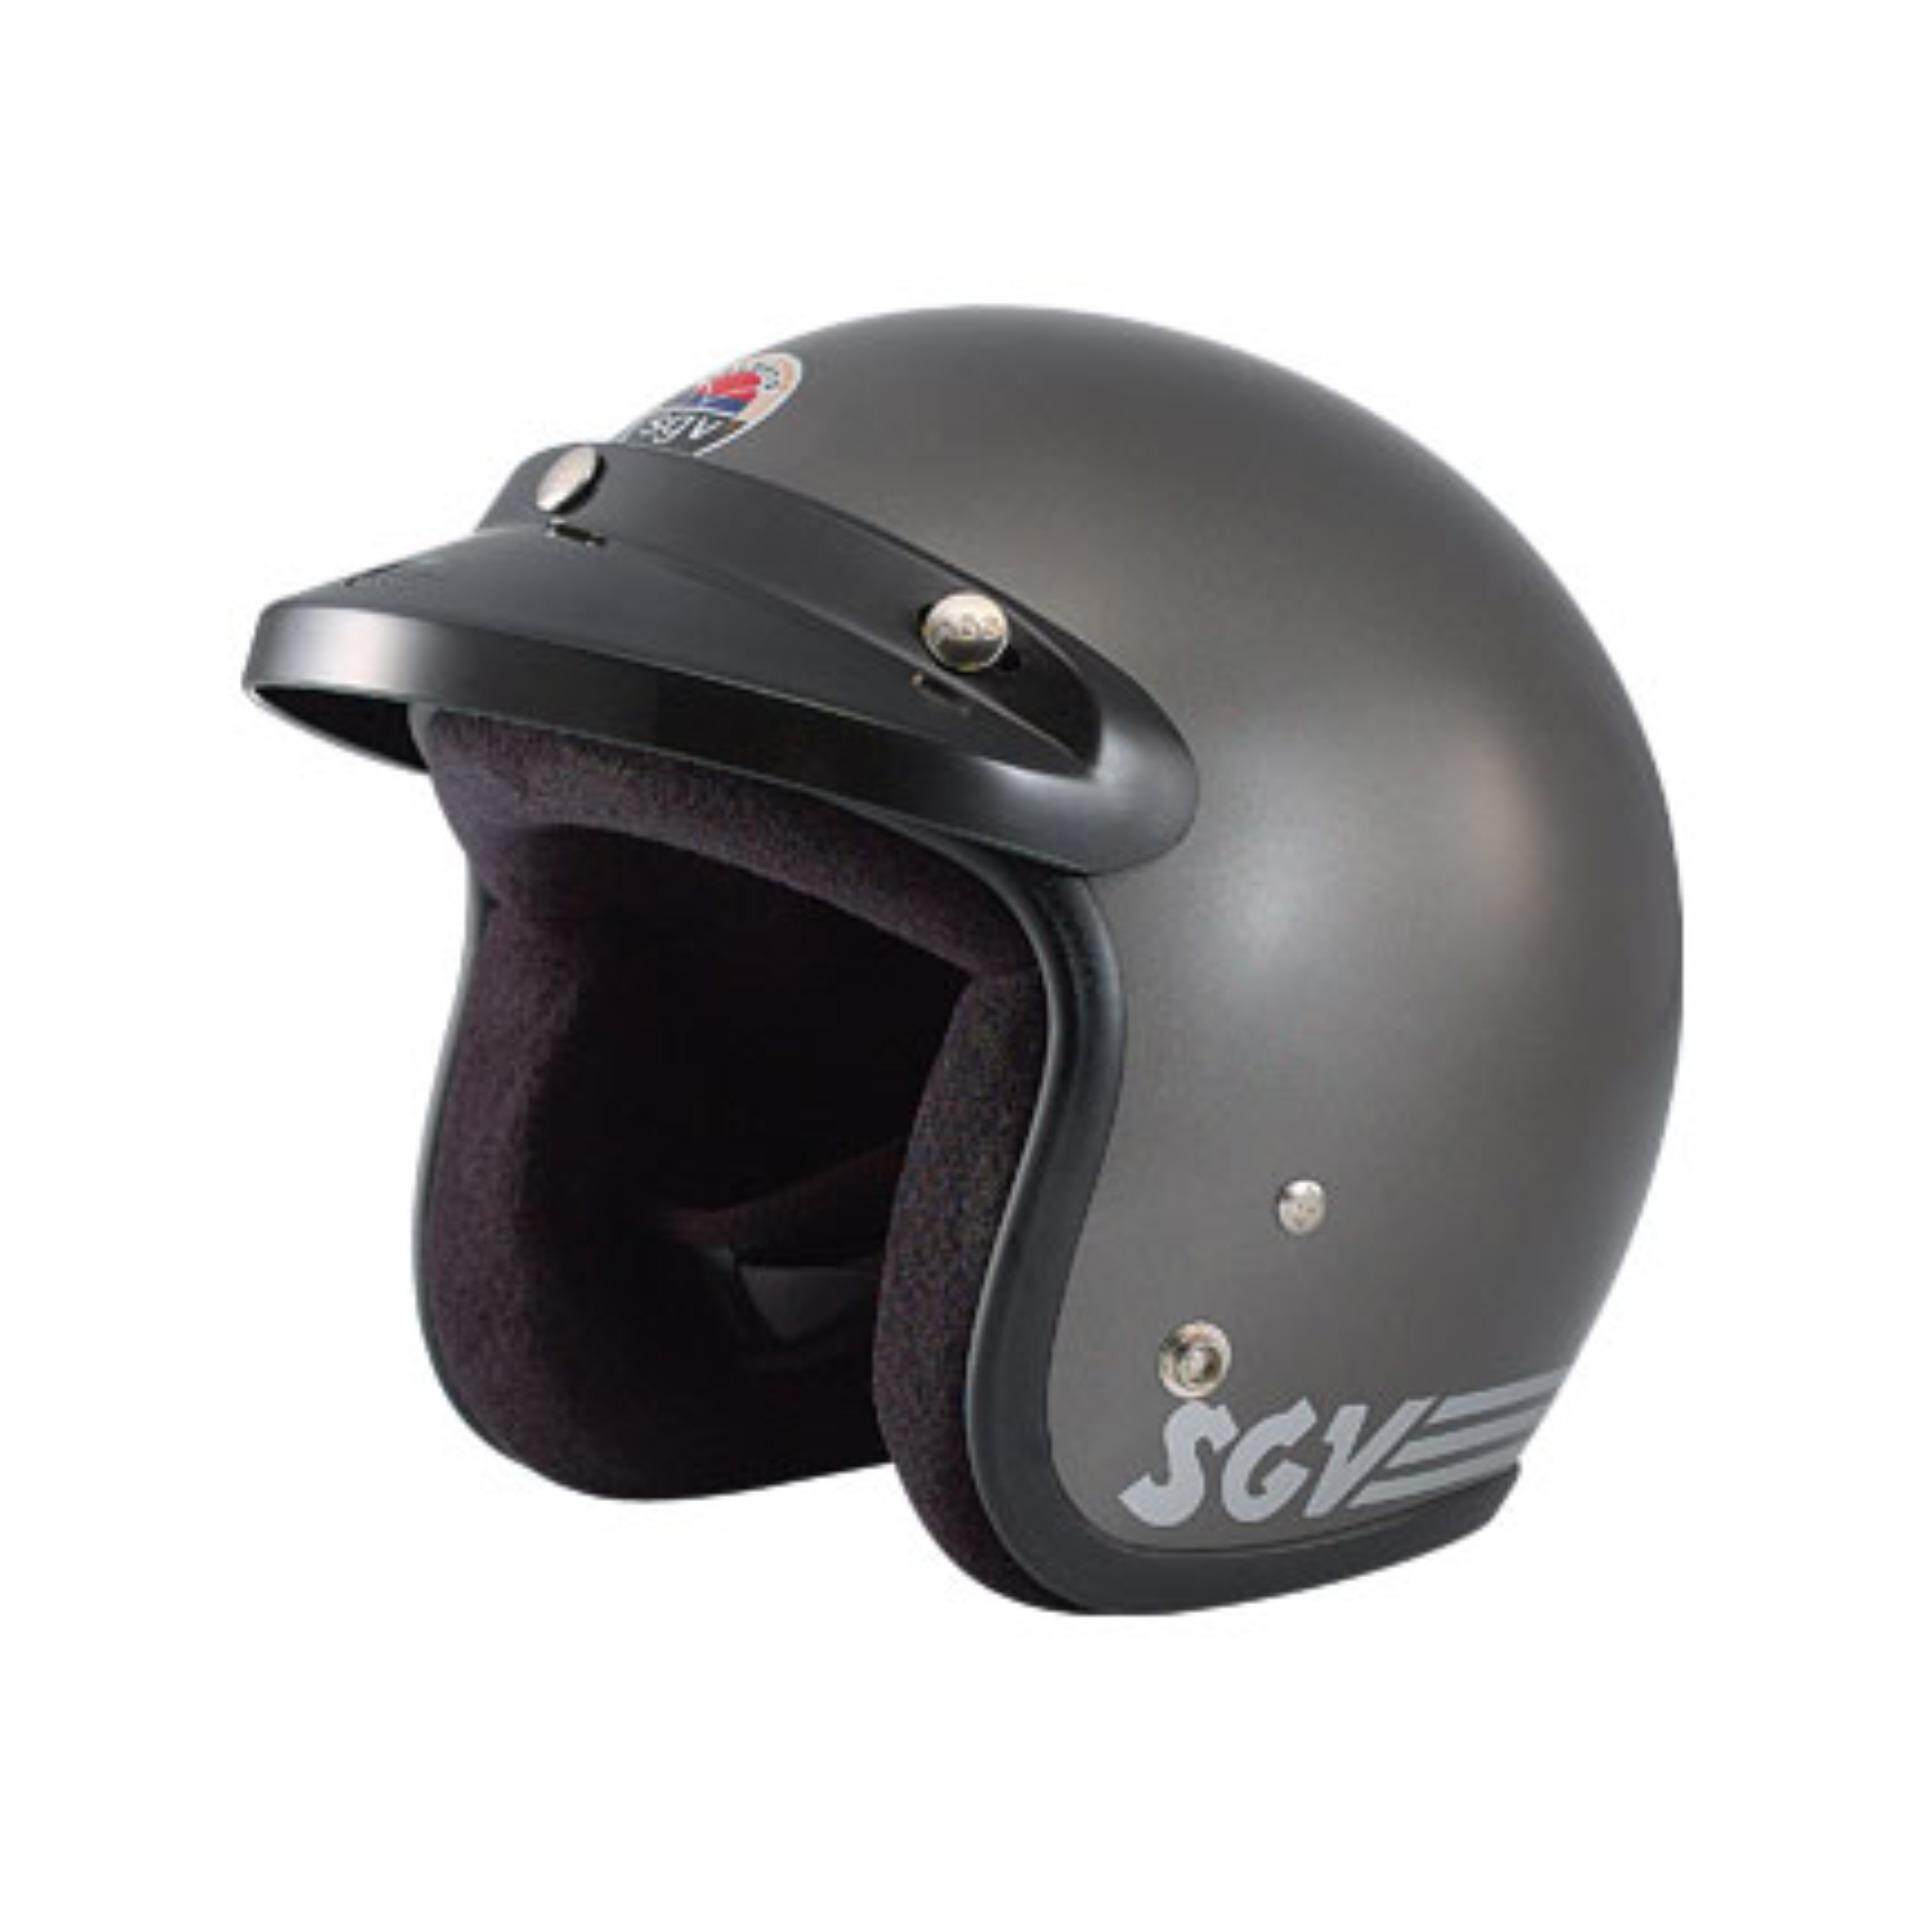 SGV 99 Helmet 99ND